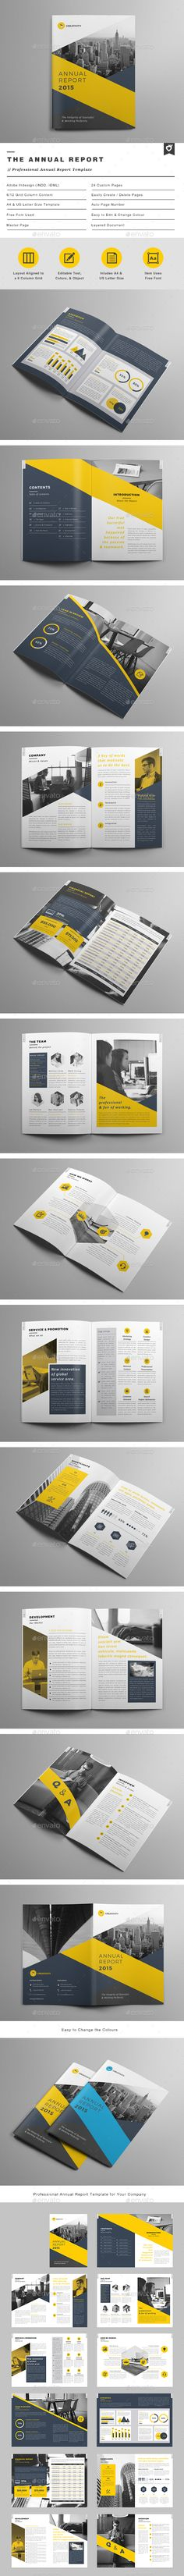 The Annual Report Template InDesign INDD #design Download: http://graphicriver.net/item/the-annual-report/13368872?ref=ksioks